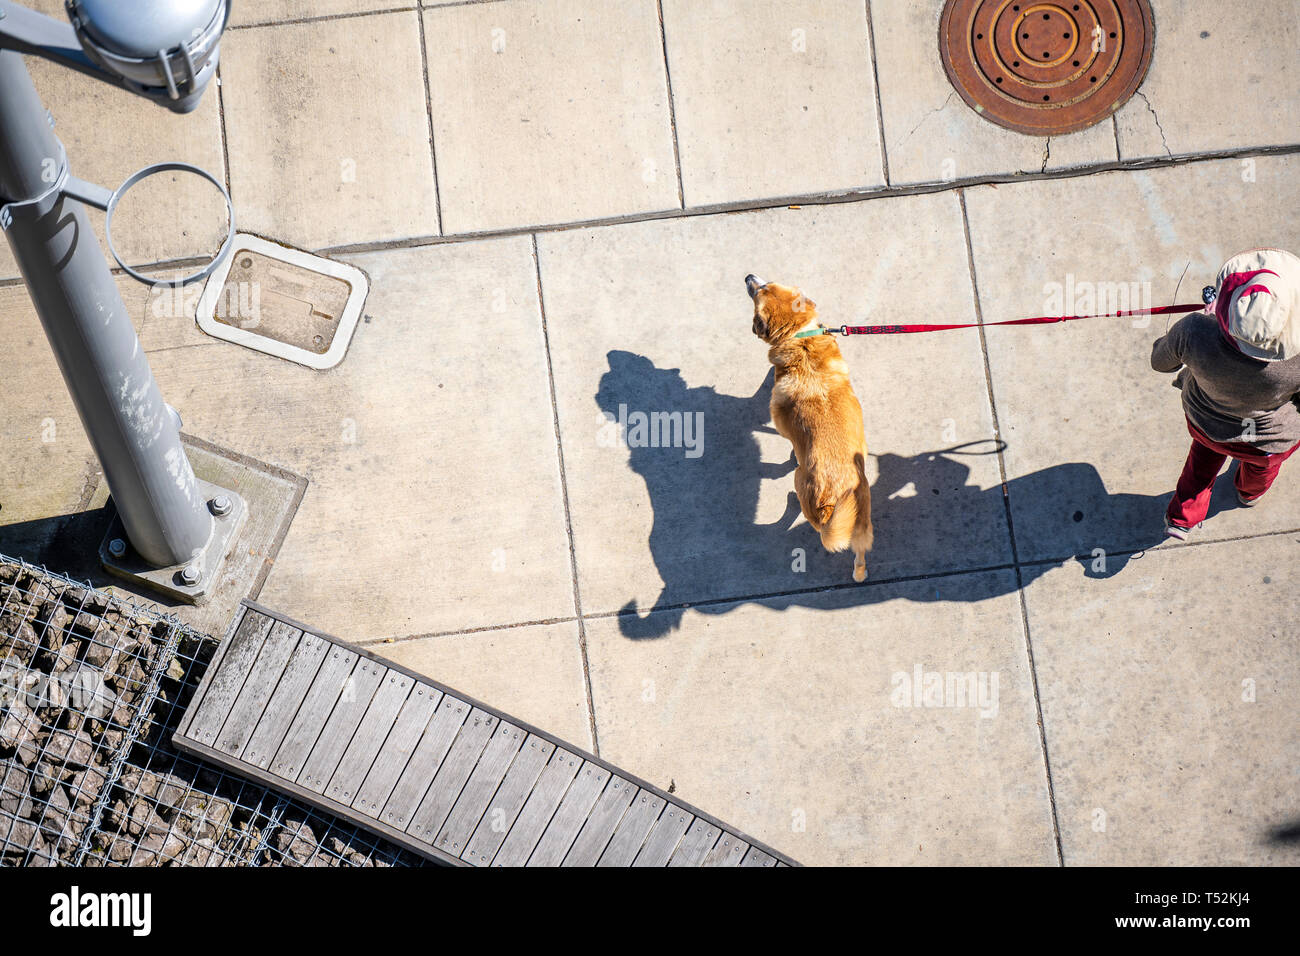 A woman in a hat is walking on a leash along the street of the city of her beloved dog - a red-haired Labrador, who is happy to run on the concrete si - Stock Image